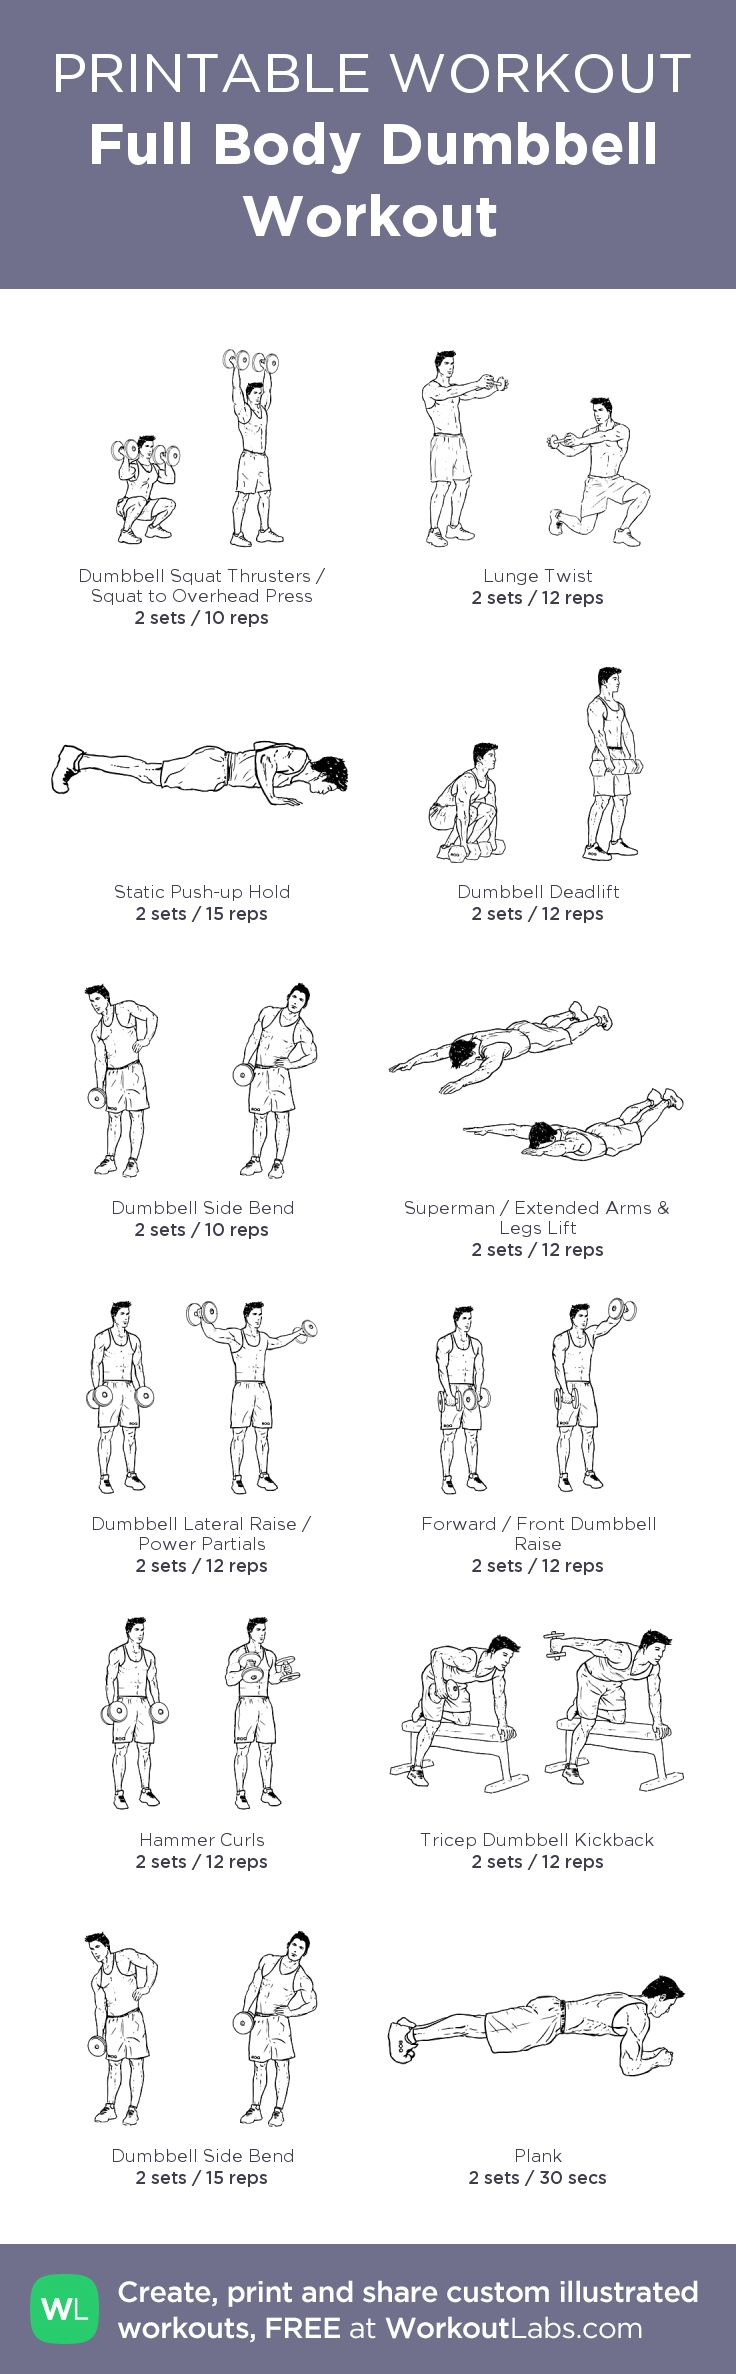 Full Body Dumbbell Workout:my visual workout created at WorkoutLabs.com • Click through to customize and download as a FREE PDF! #customworkout